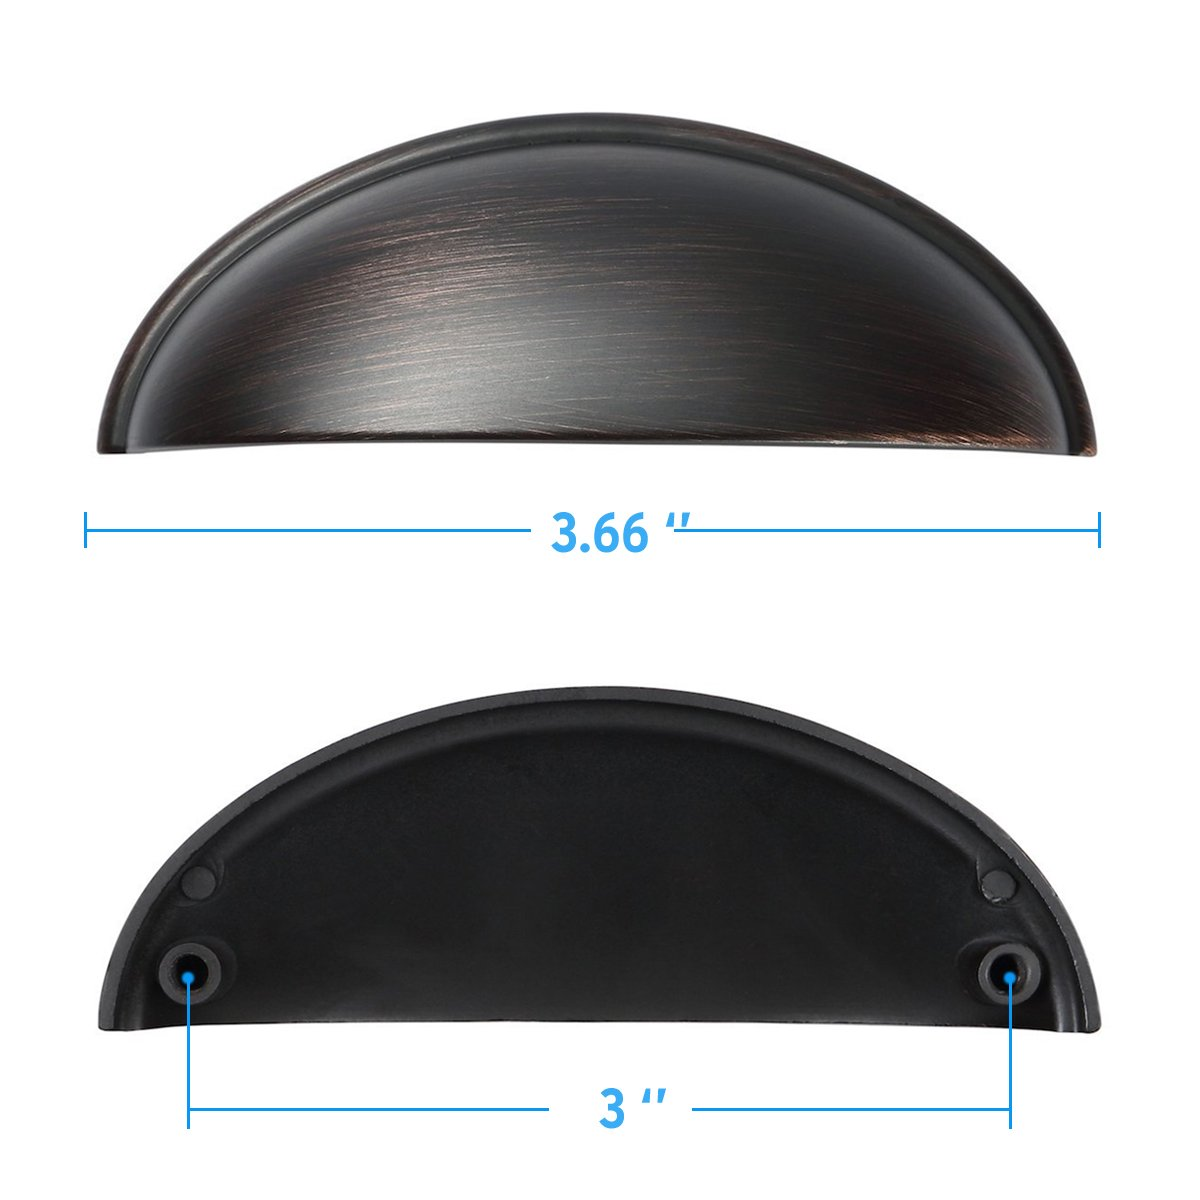 Amazer Cabinet Handle Pulls, D1000 Oil Rubbed Bronze Traditional Cabinet & Furniture Knobs Hardware Bin Cup Drawer Handle Pull - 3'' Inch (76mm) Hole Centers - 10 Pack by Amazer (Image #4)